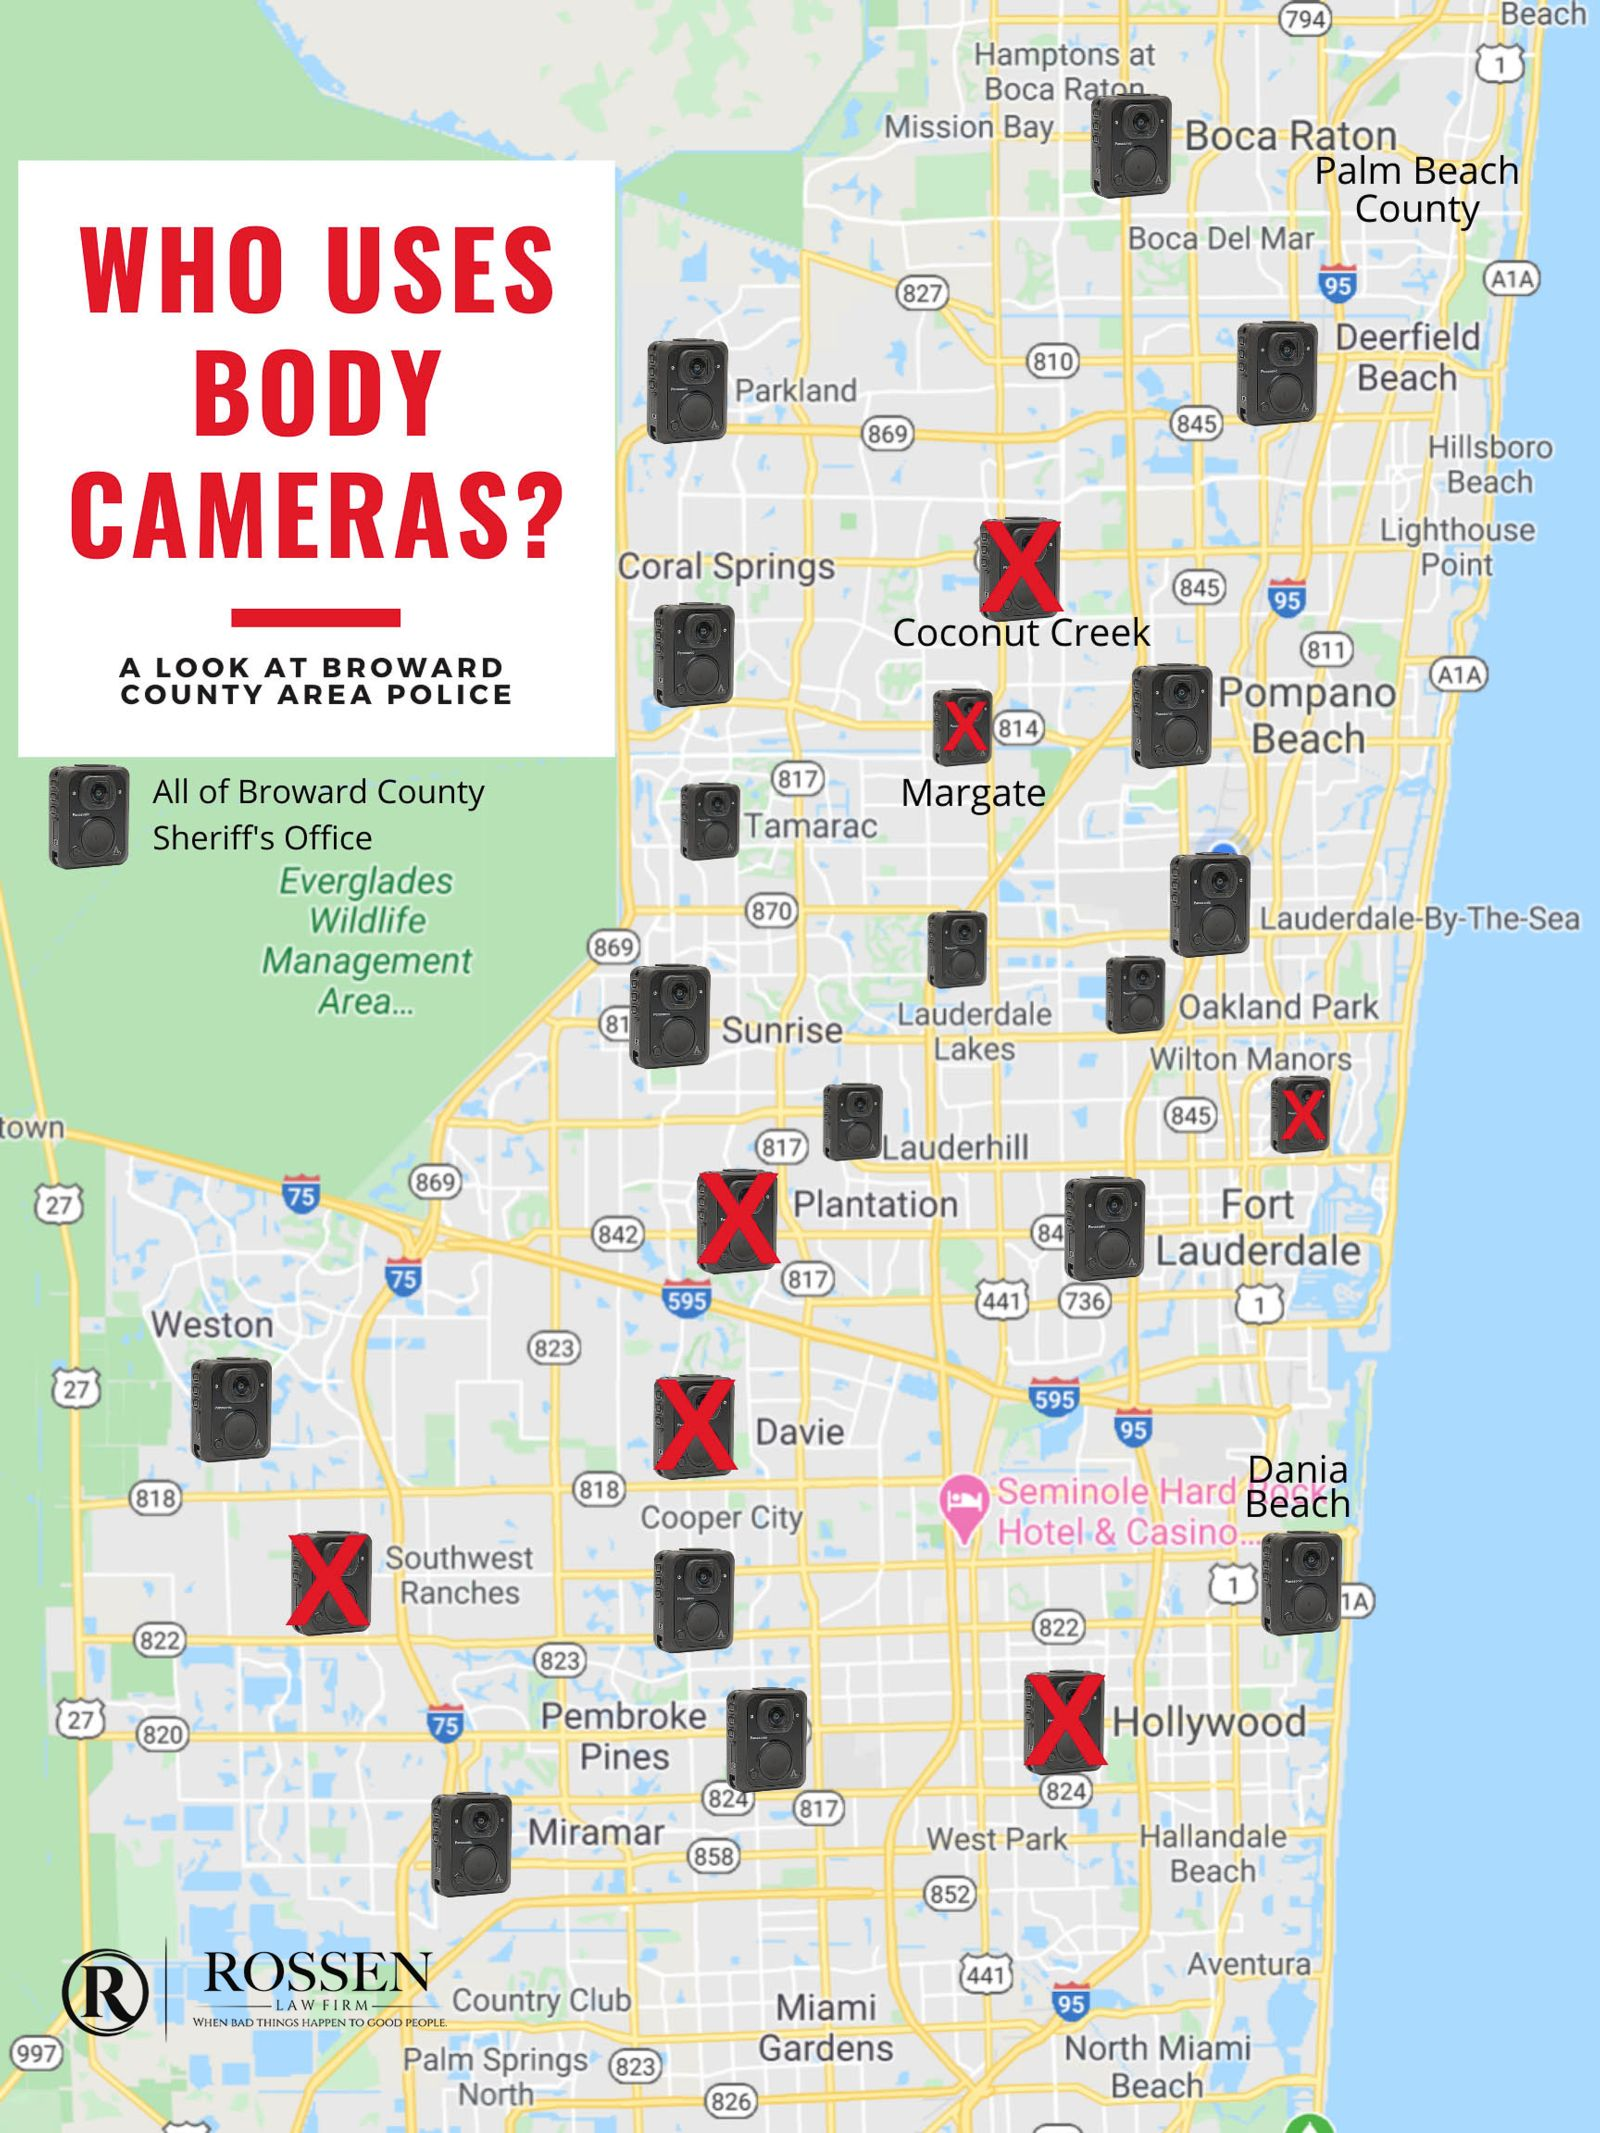 Body Worn Cameras by Police Department in Broward County, Fort Lauderdale and South Florida